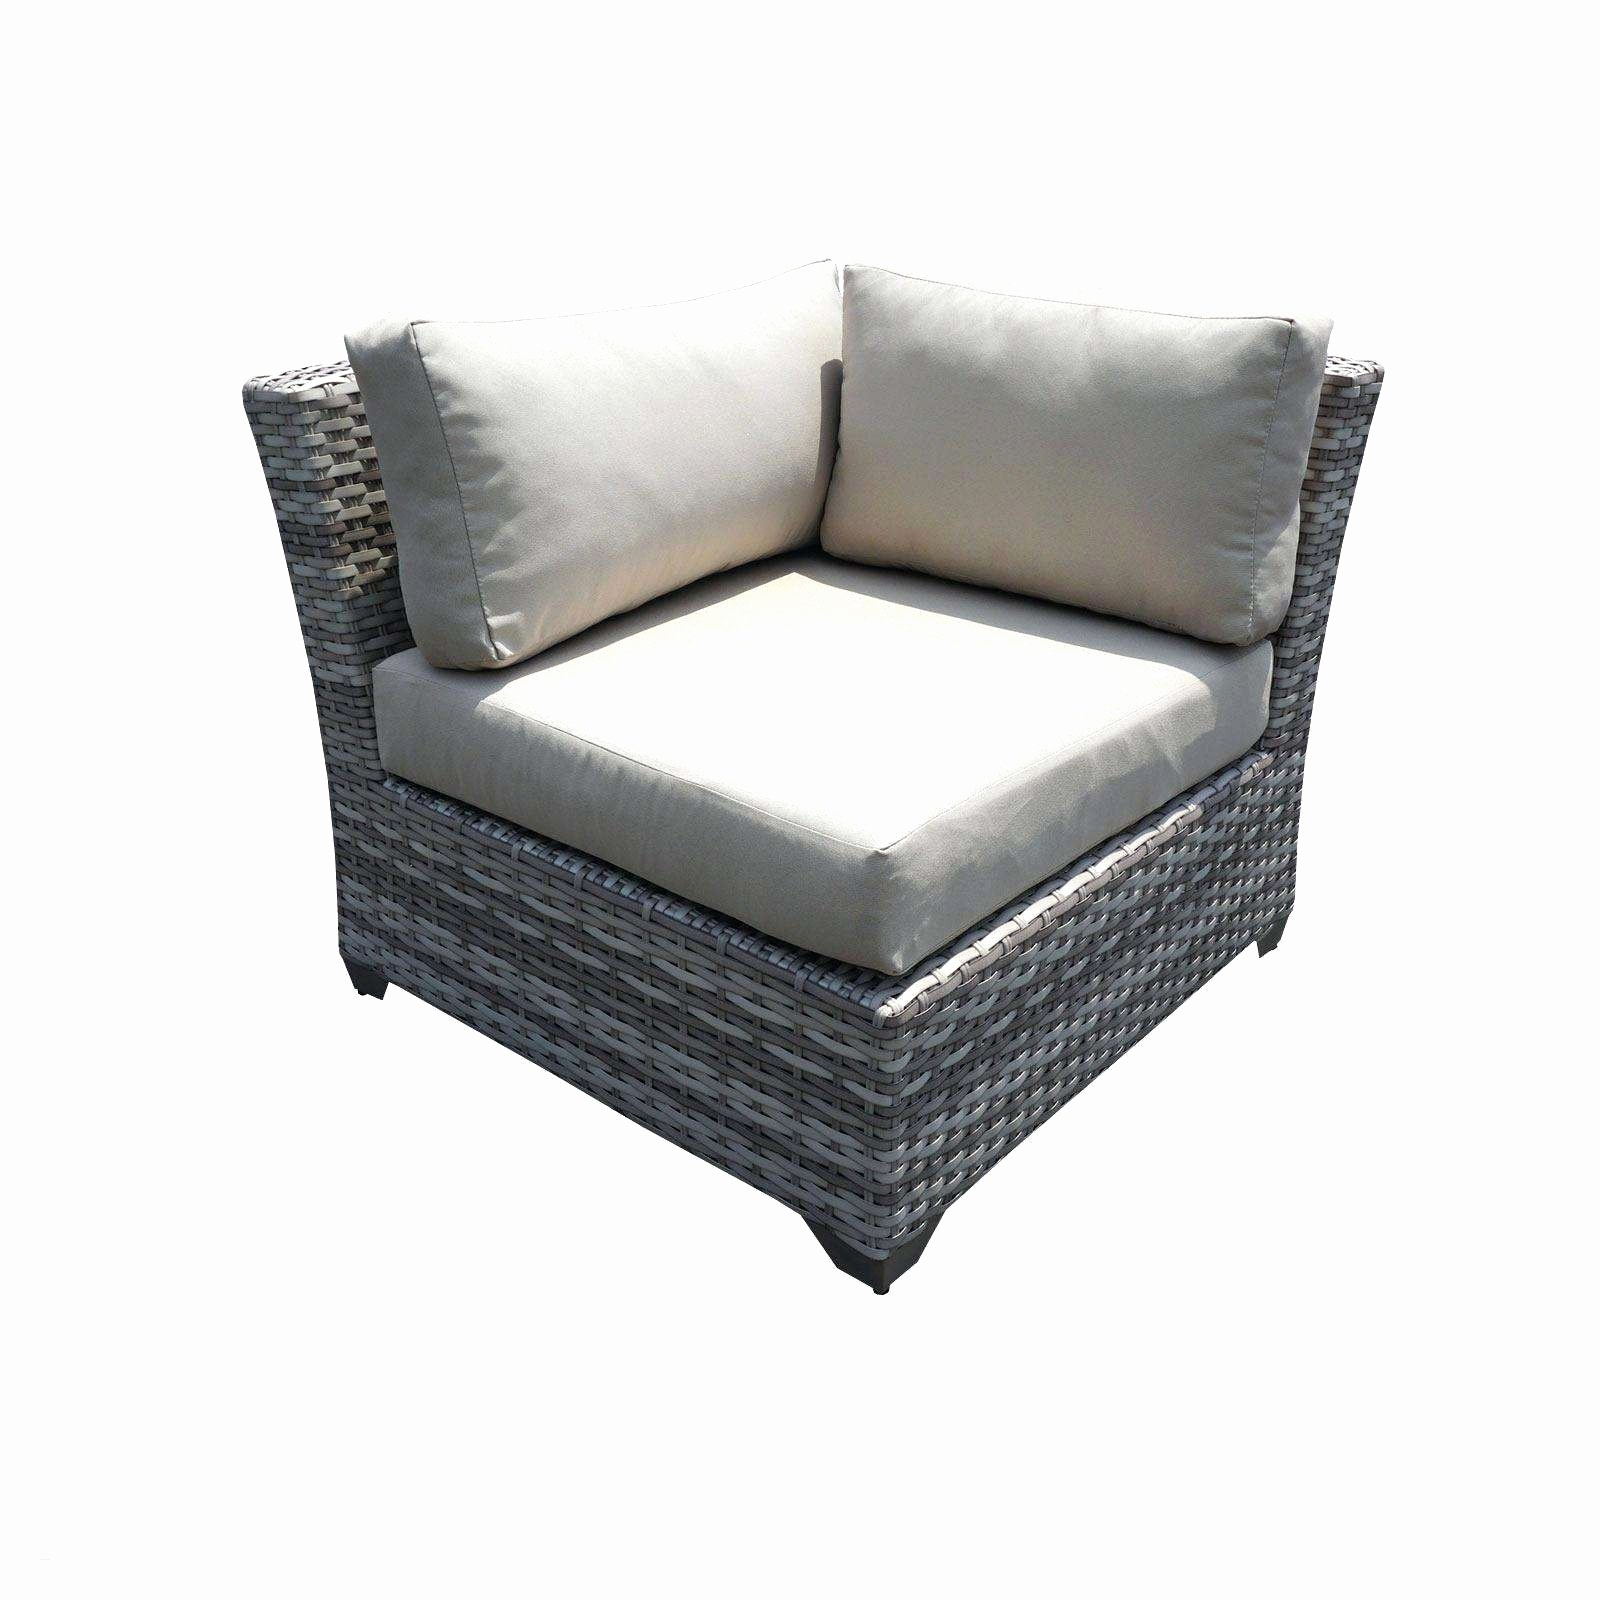 Simple 25 2 Piece Sectionals With Chaise Awesome | Russiandesignshow Throughout Aquarius Light Grey 2 Piece Sectionals With Laf Chaise (View 16 of 25)